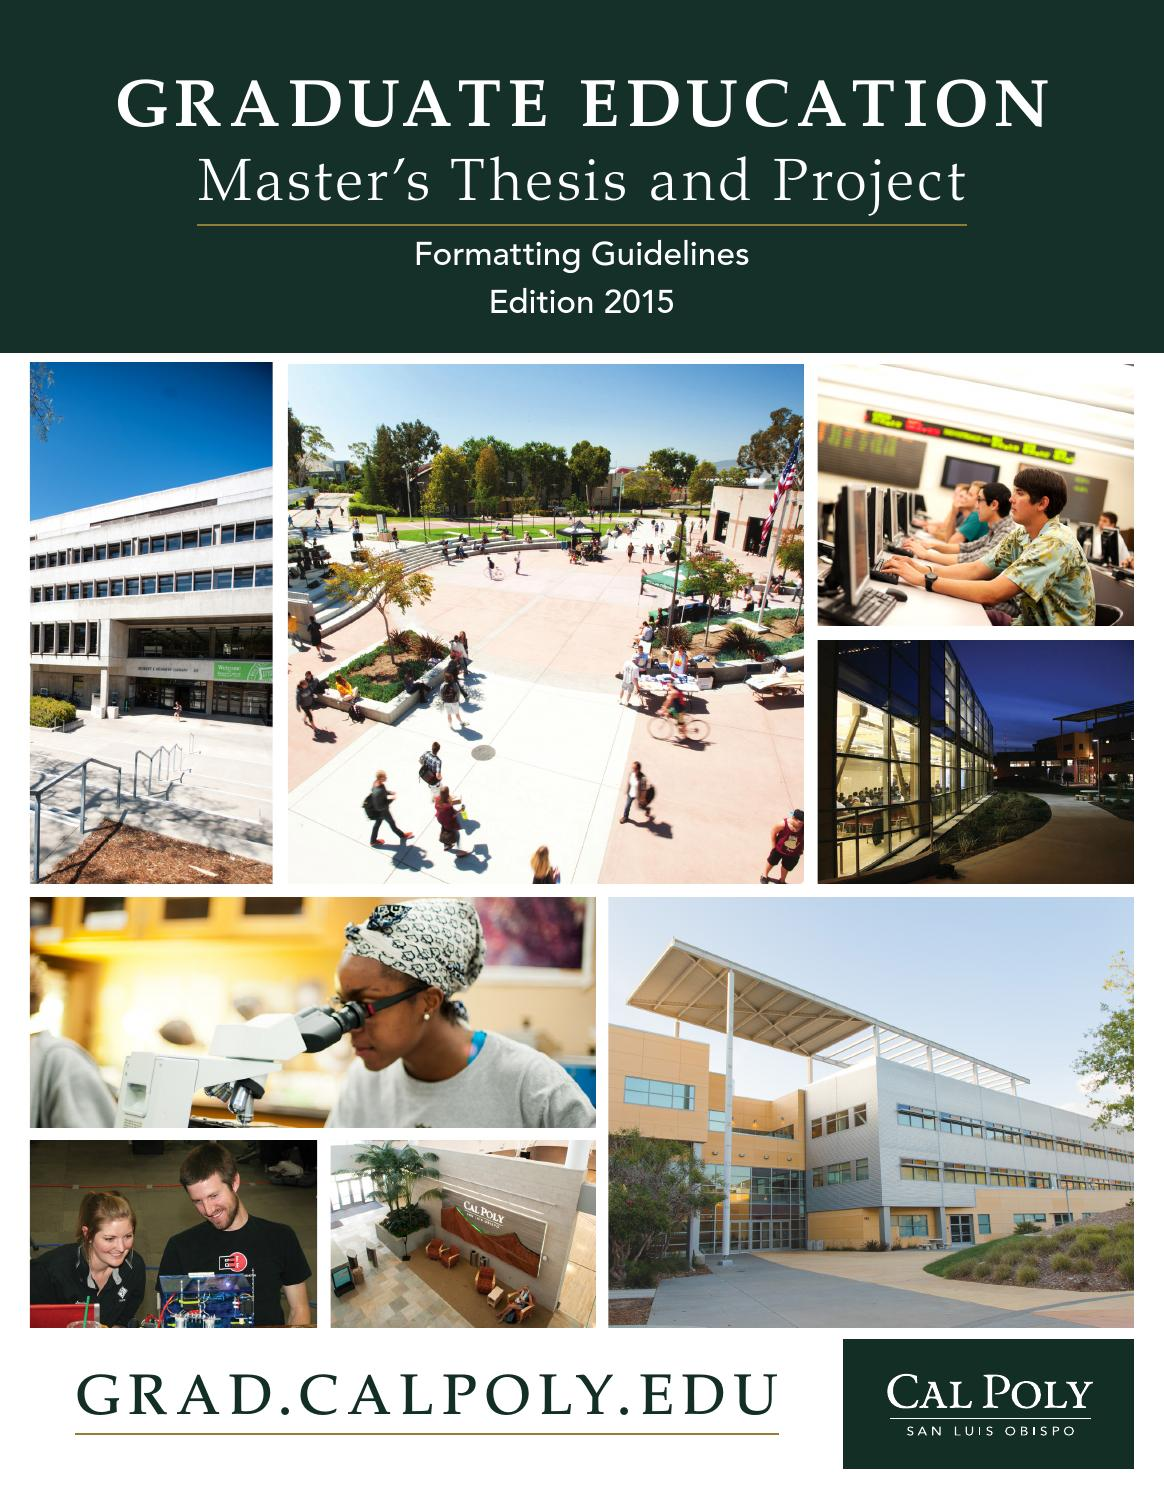 apa masters thesis reference Apa 6th edition citation style apa 6th edition guide annual report article, journal title of doctoral dissertation or master's thesis.